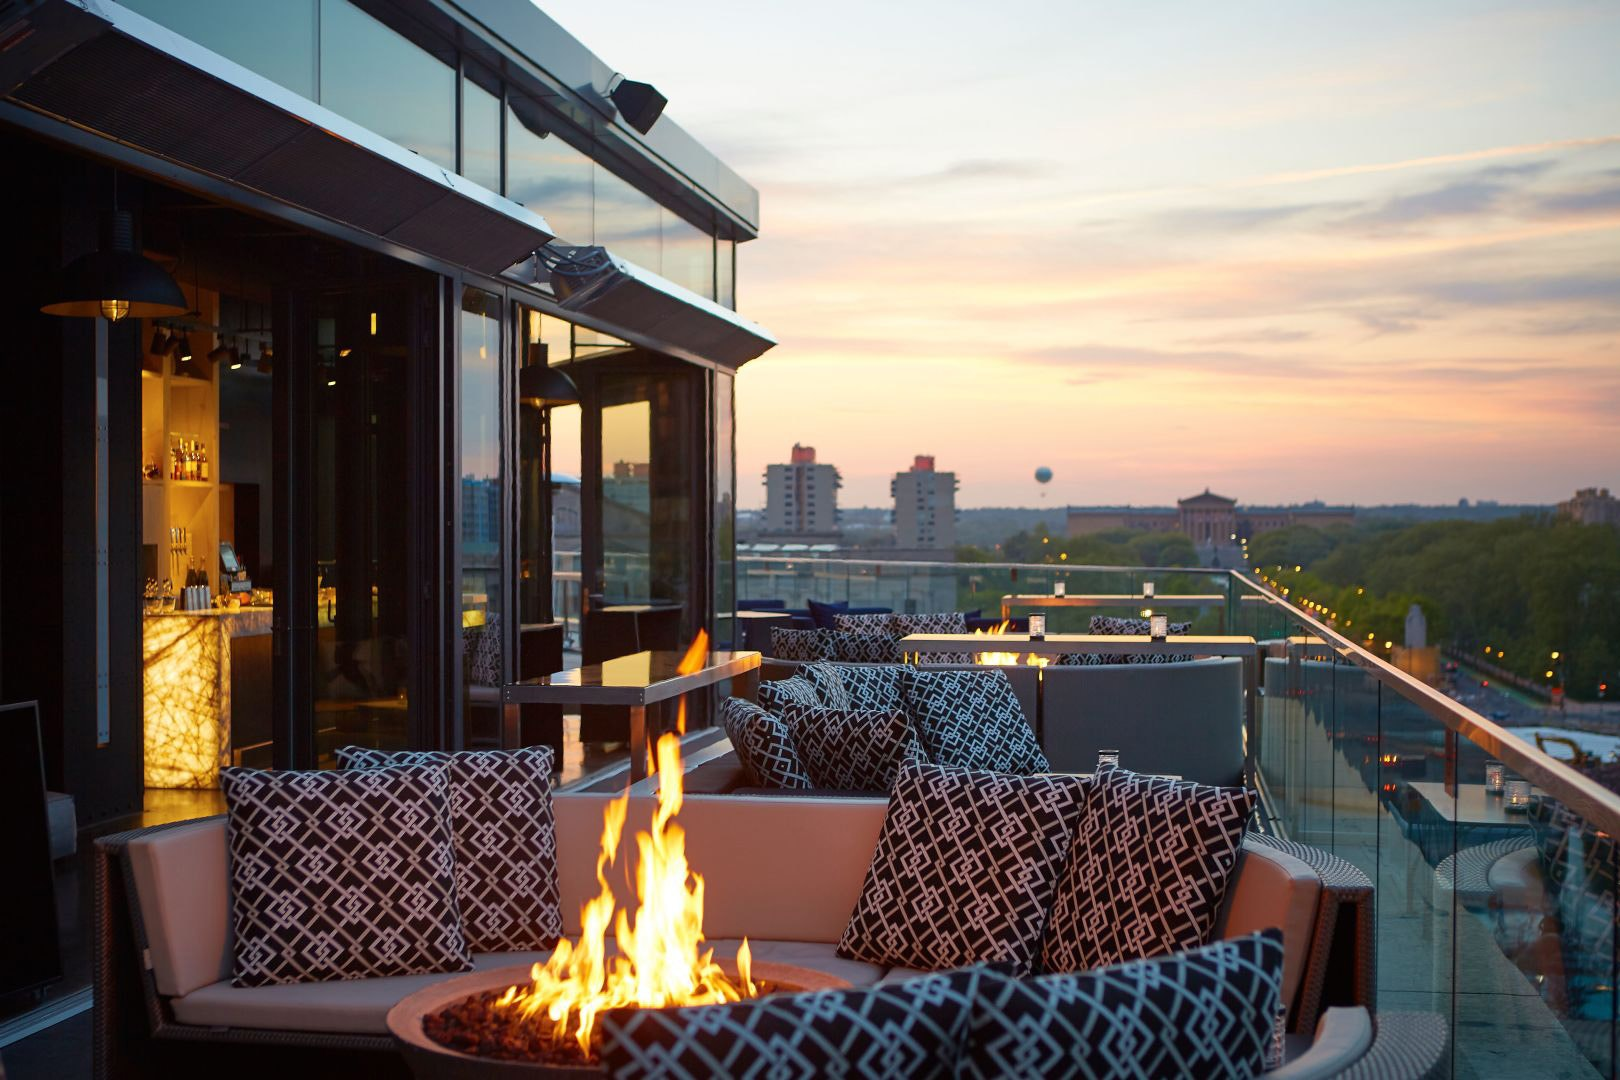 Foliage and Fire Pits: Cozy Getaways for the Perfect Fall Weekend